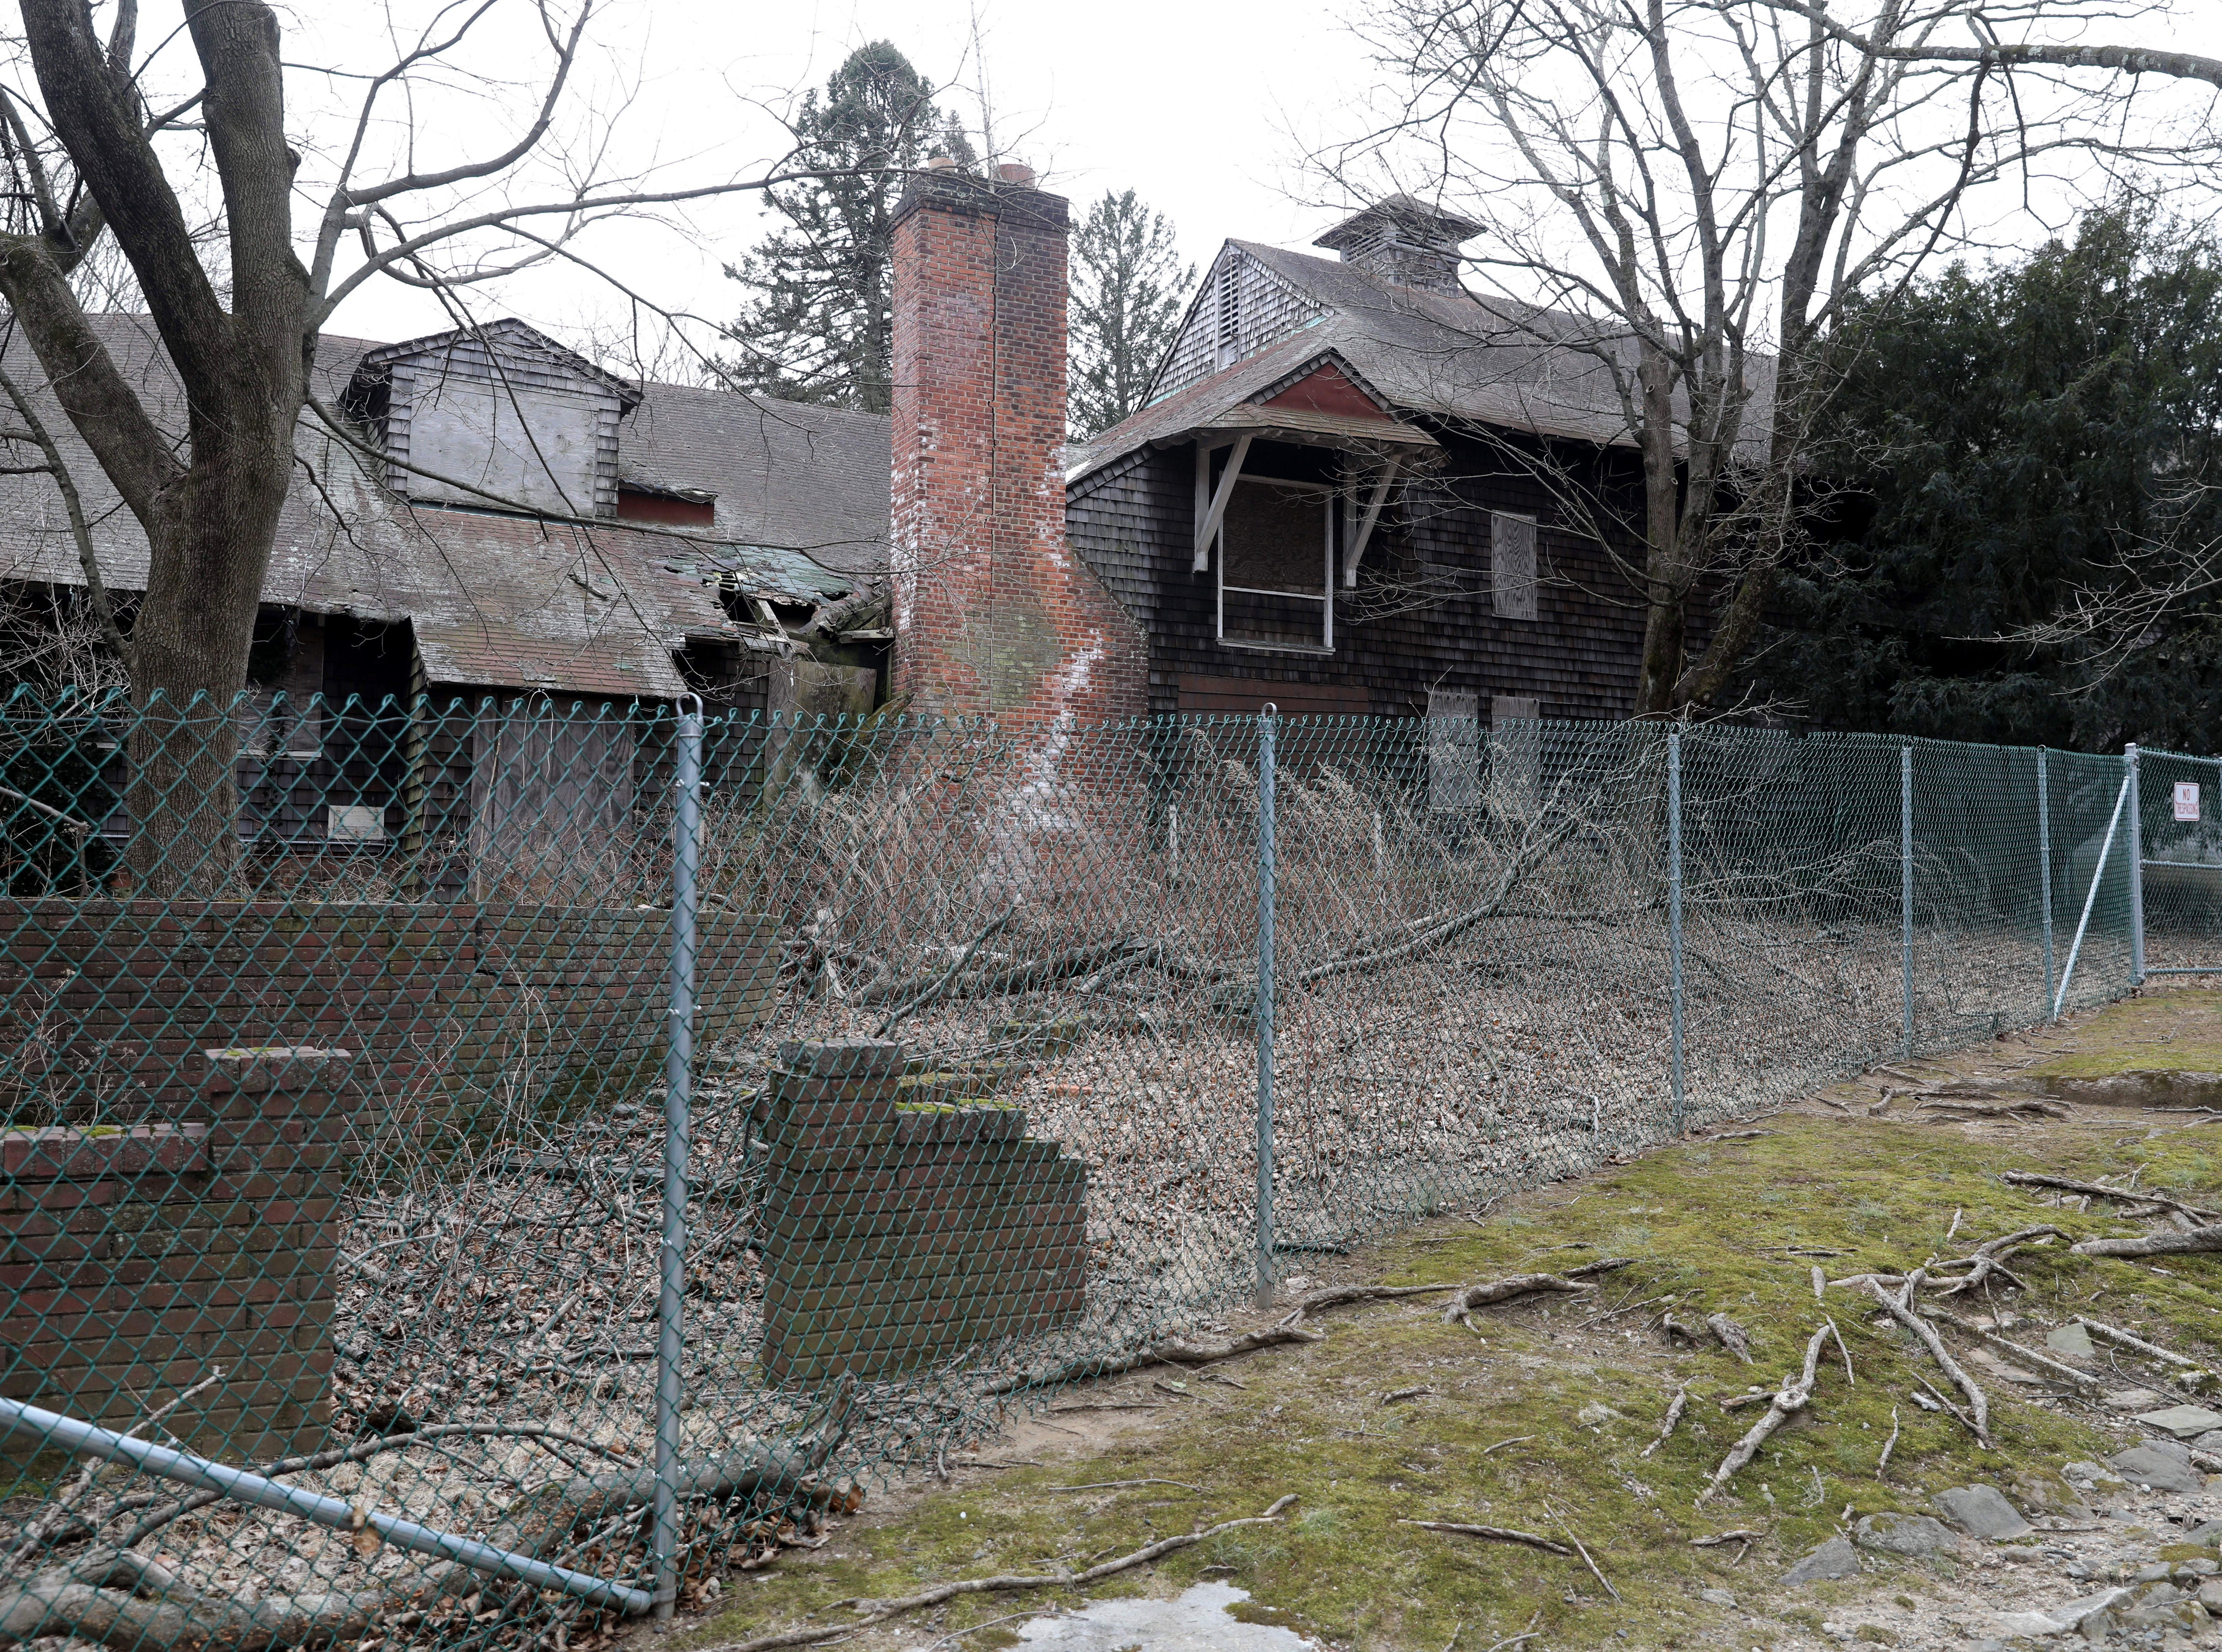 Fencing surrounds dilapidated barn structures at Ward Acres Park in New Rochelle, Feb. 27, 2019.